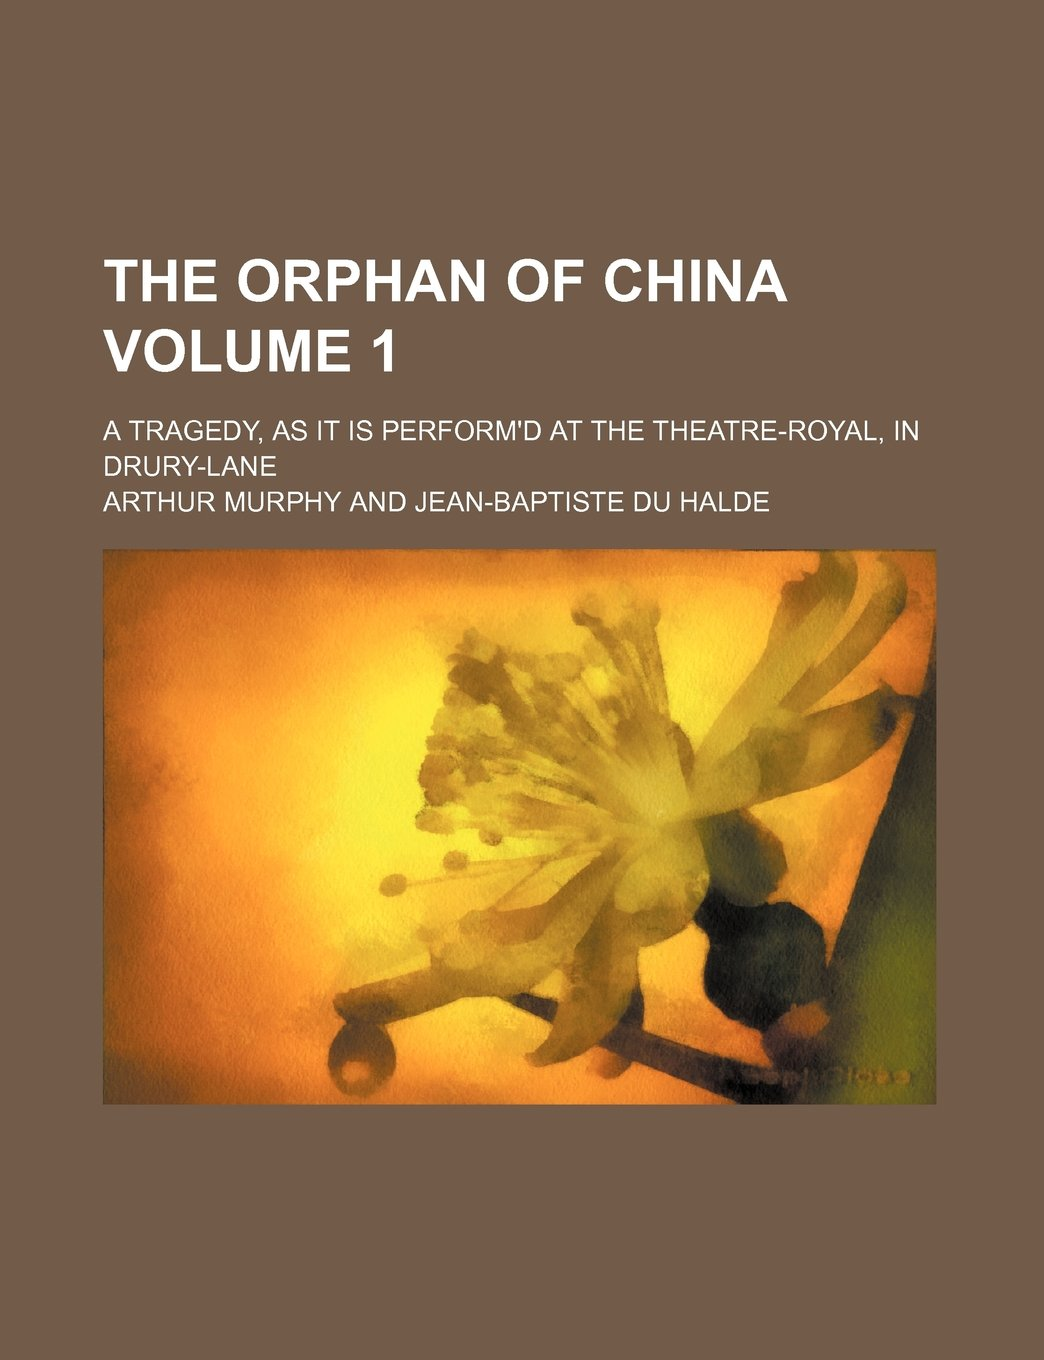 Read Online The orphan of China Volume 1; a tragedy, as it is perform'd at the Theatre-Royal, in Drury-Lane pdf